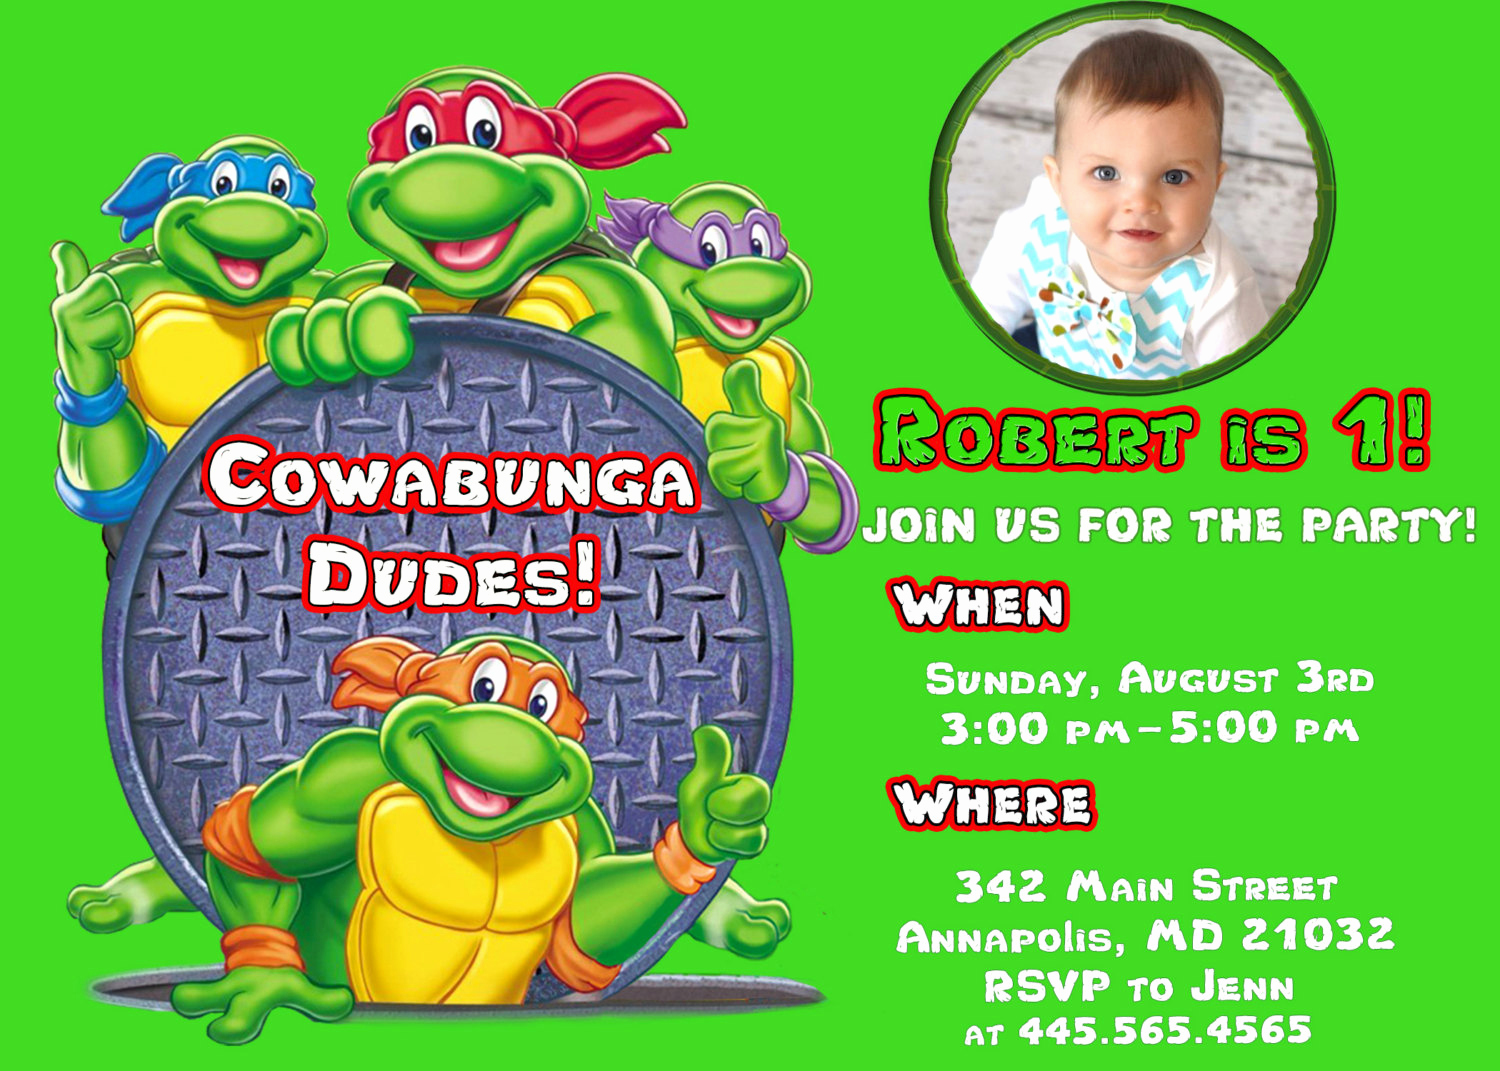 Free Ninja Turtle Invitation Templates Lovely Free Printable Ninja Turtle Birthday Party Invitations